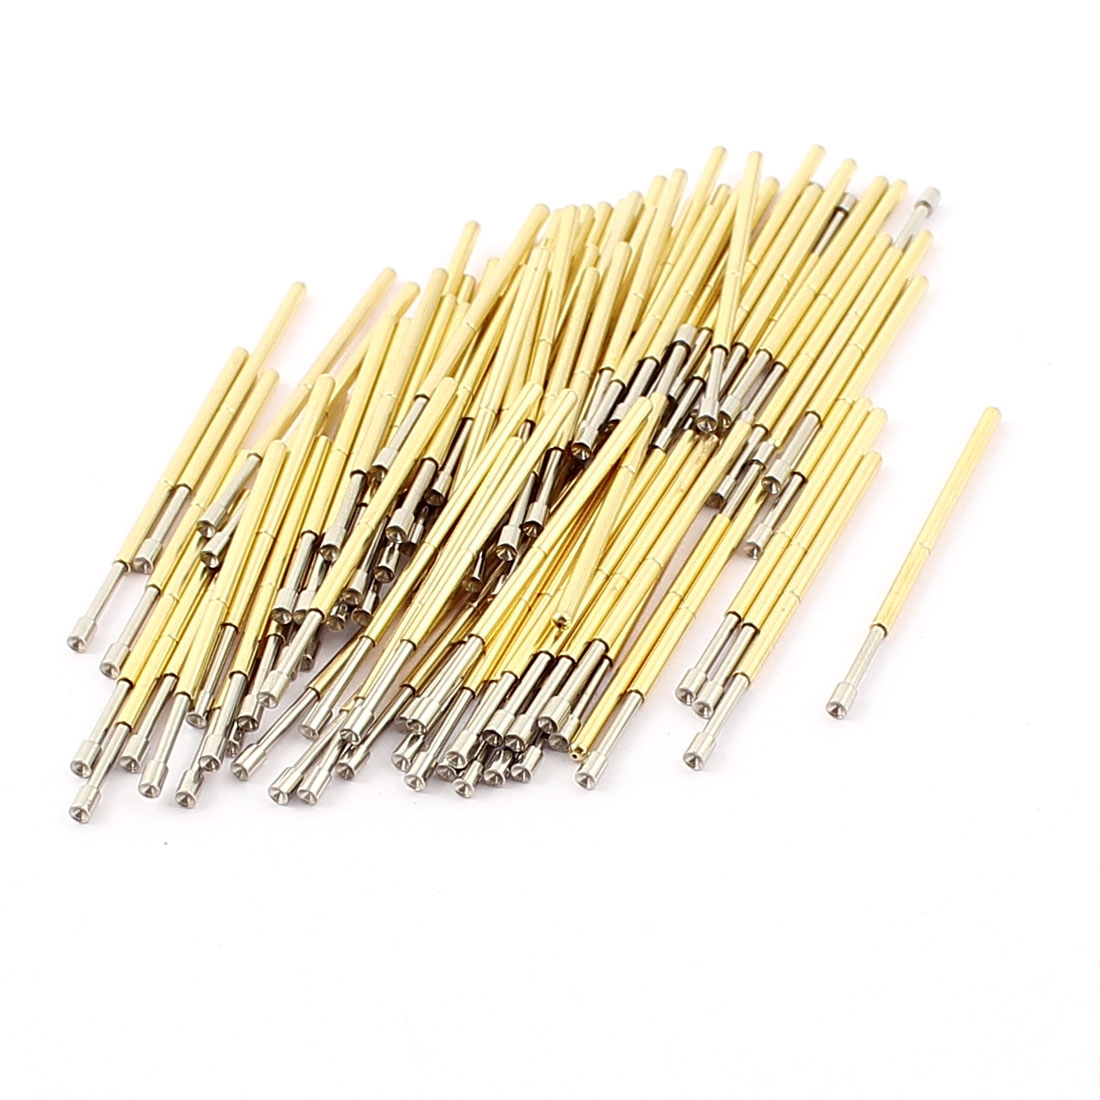 100Pcs P100A 1.5mm Dia Concave Test Tip Spring Loaded Testing Probes Contact Pin 33mm Length